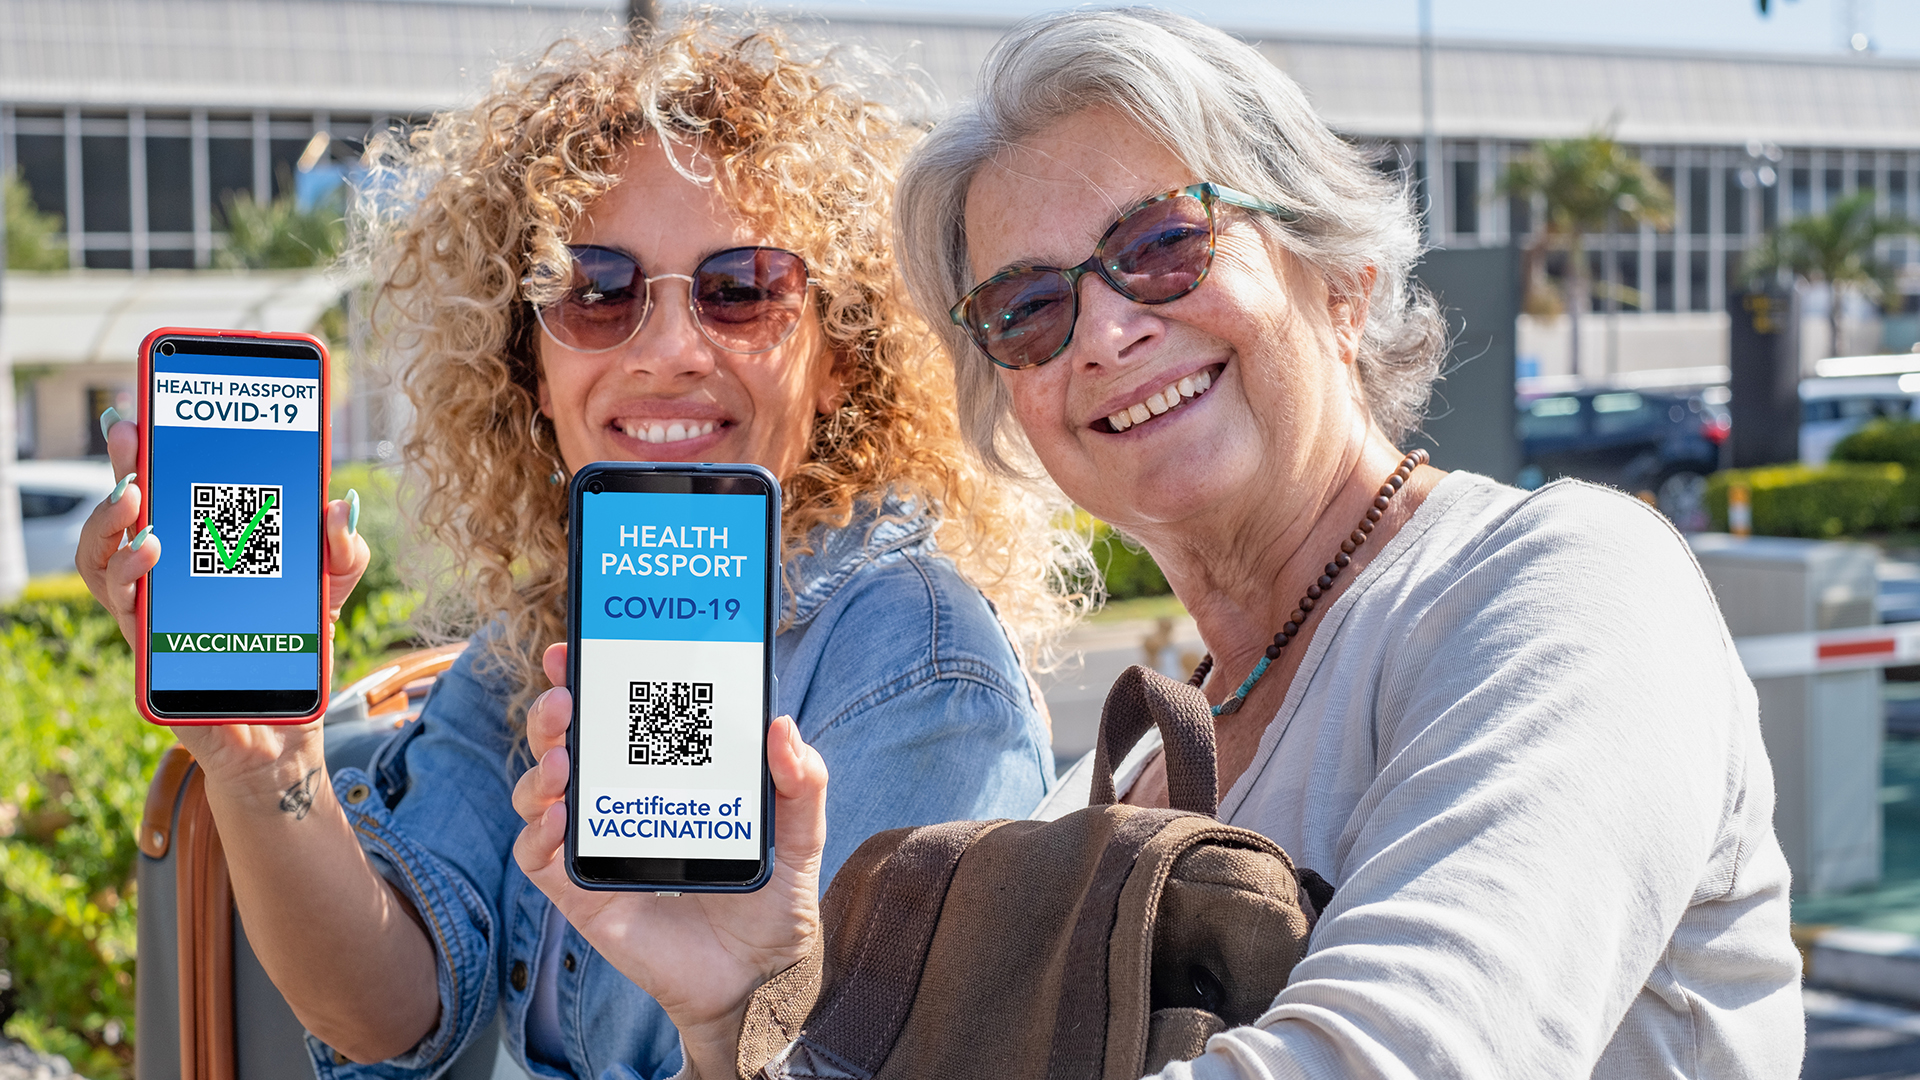 Two smiling women ready to travel showing digital health certifi